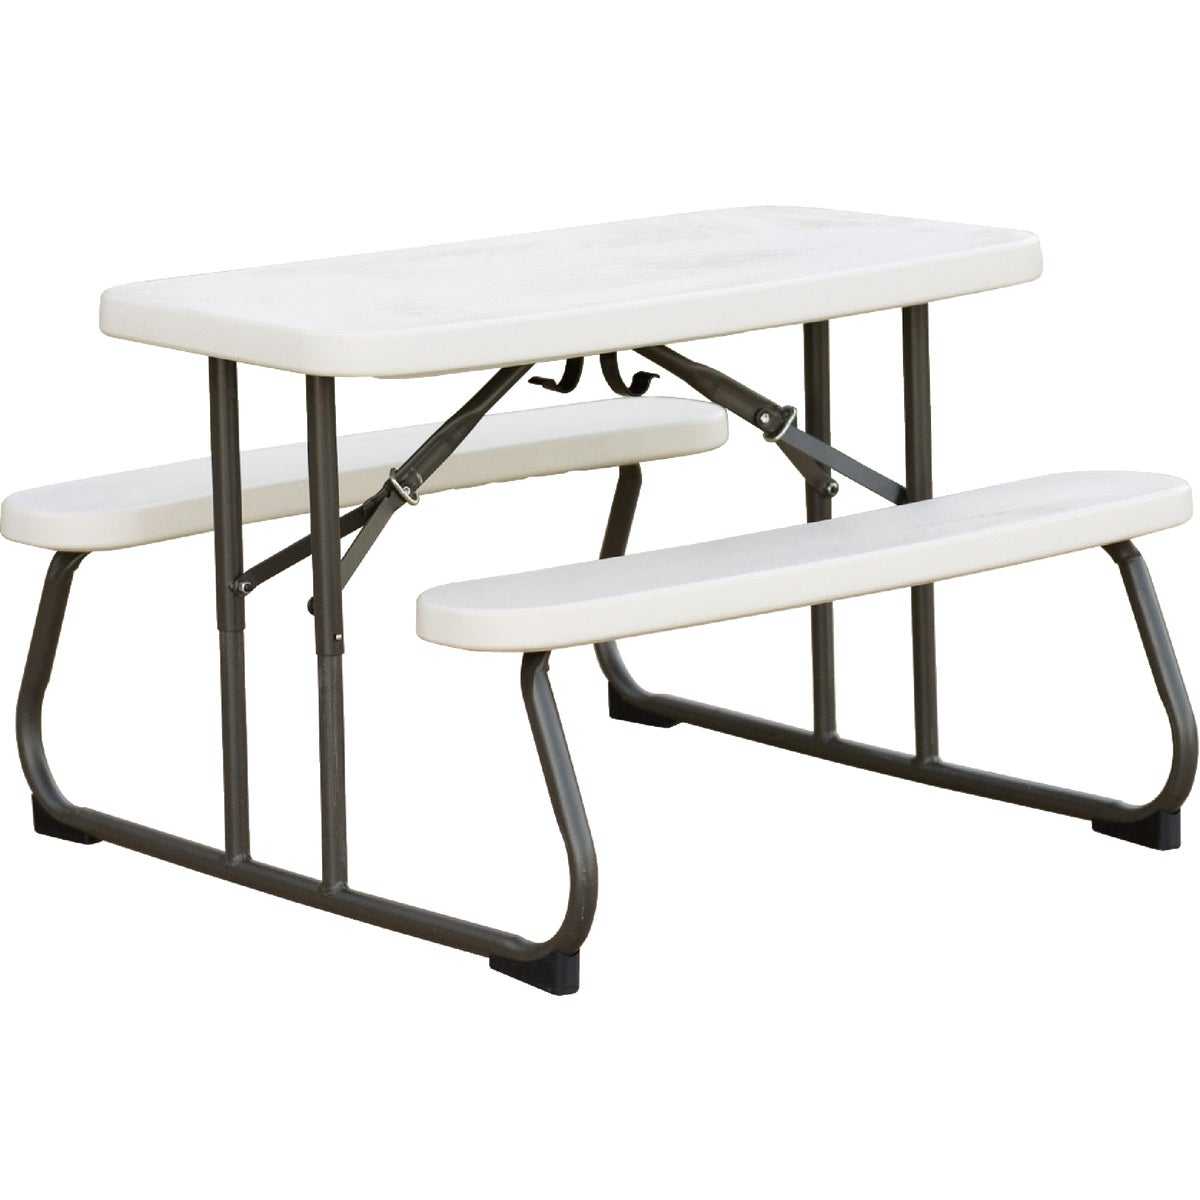 KIDS PICNIC TABLE - 80094 by Lifetime  Xiamen